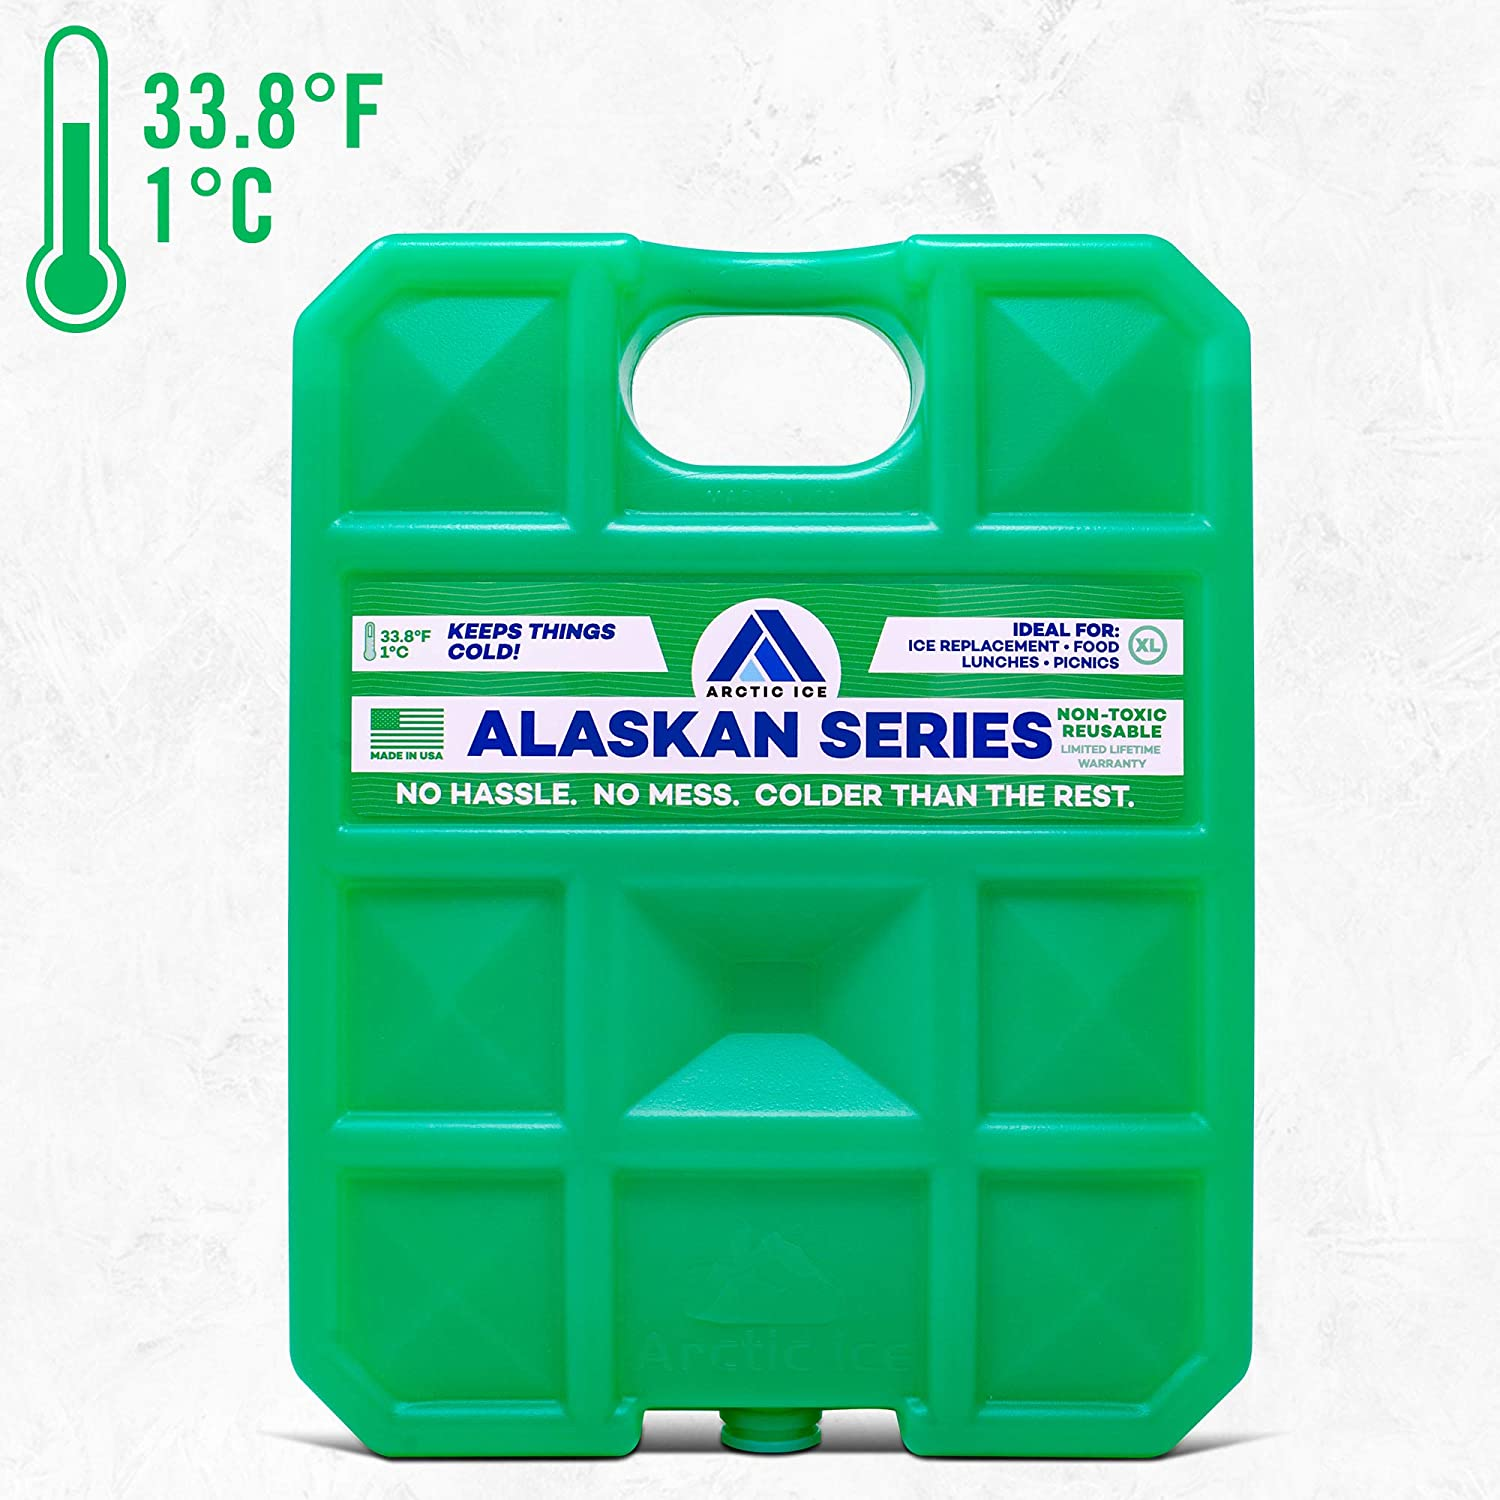 Long Lasting Ice Pack for Coolers, Camping, Fishing and More, X-Large Reusable Ice Pack, Alaskan Series by Arctic Ice